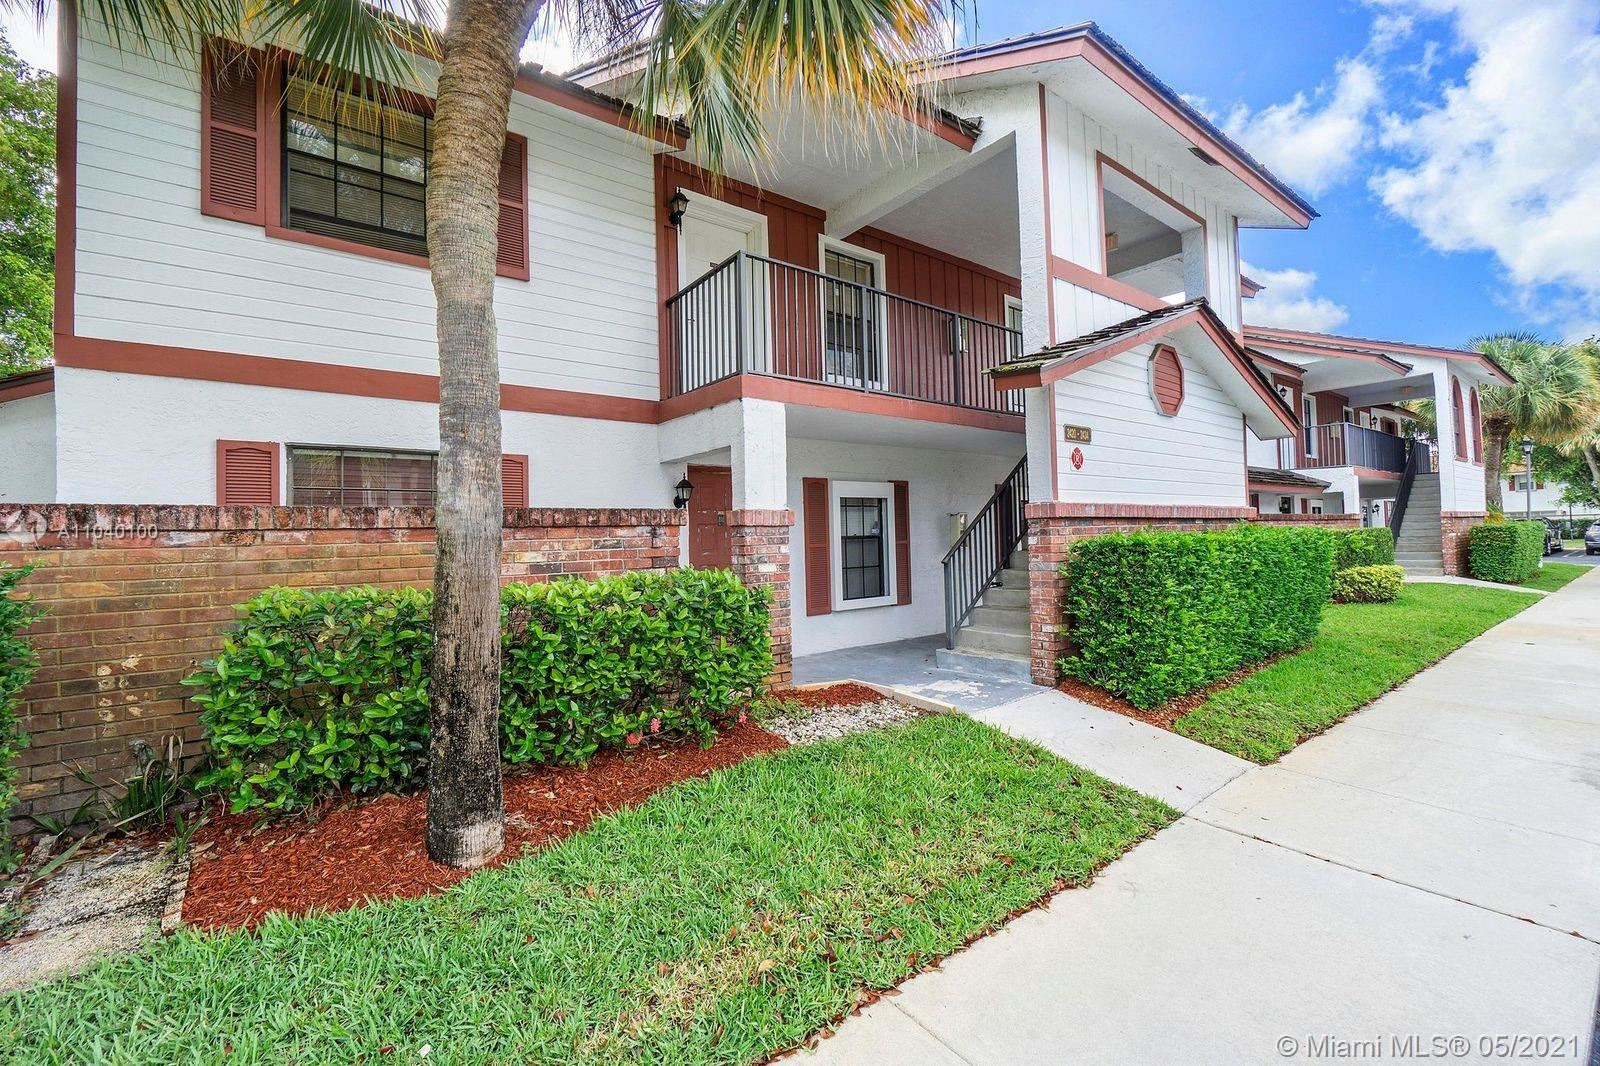 Photo of 2430 NW 89th Dr #2430, Coral Springs, FL 33065 (MLS # A11040100)